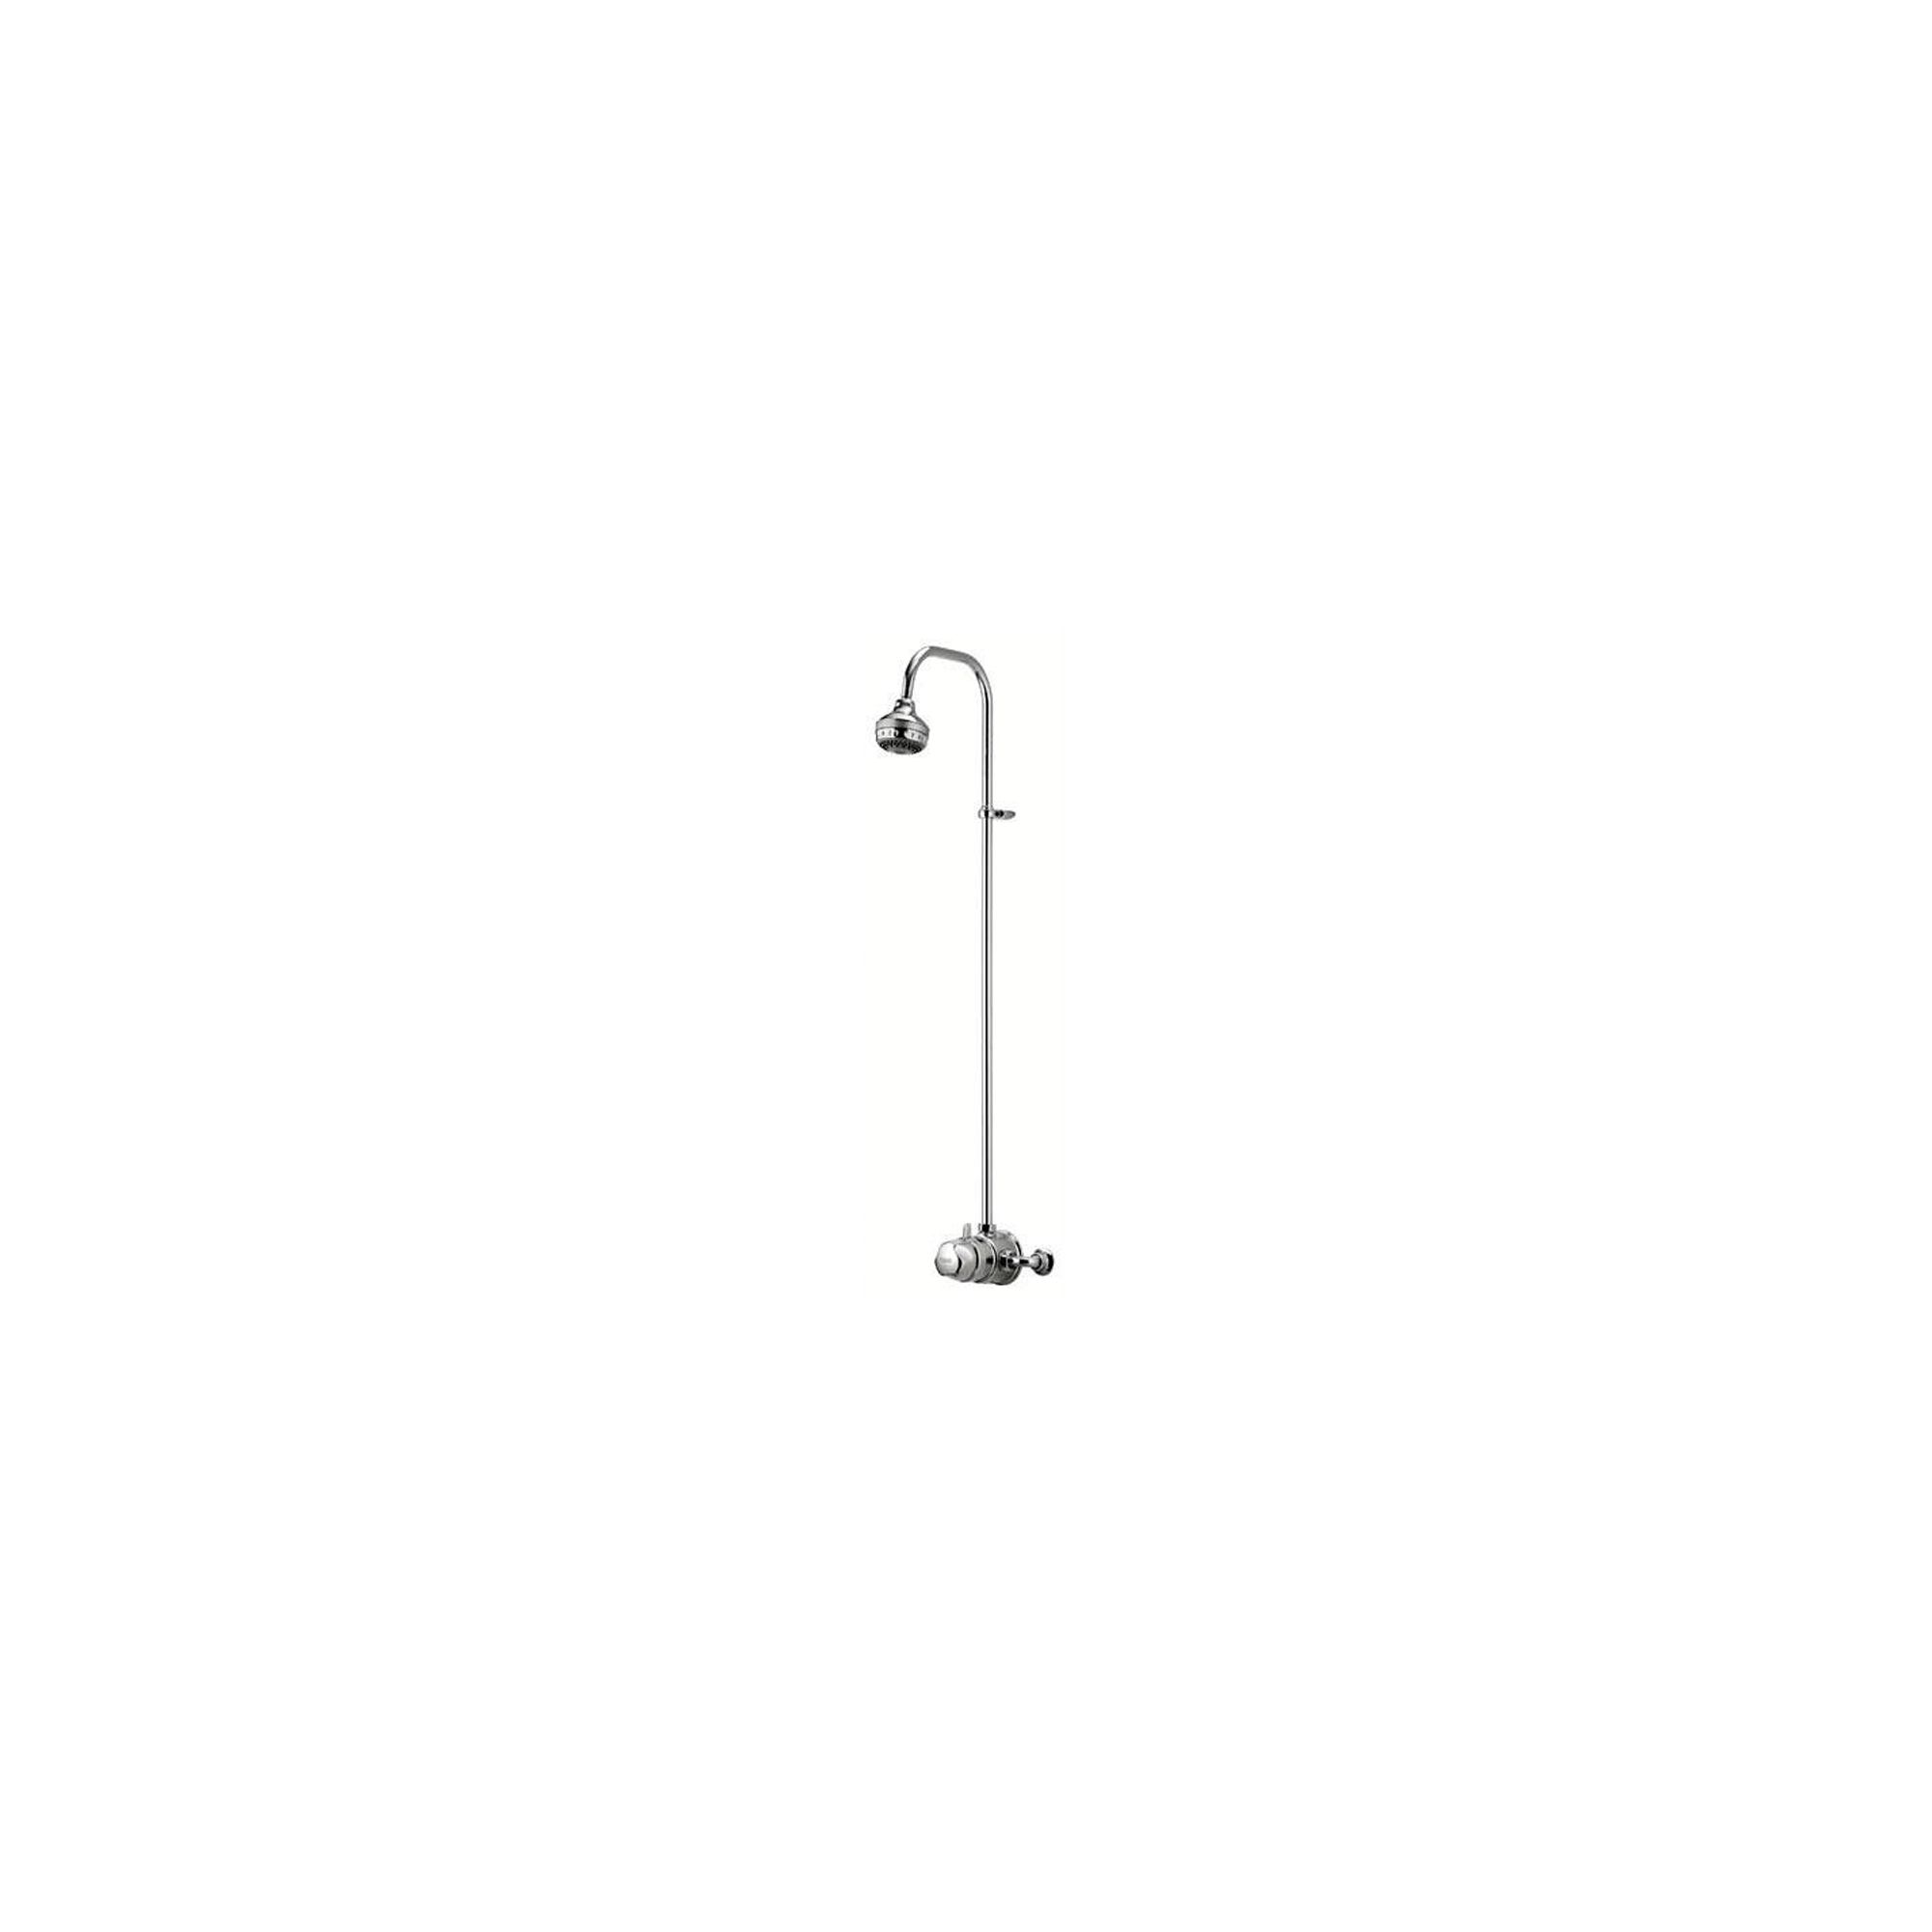 Aqualisa Aquavalve 700 Exposed Shower Valve with Exposed Shower Head Chrome at Tesco Direct